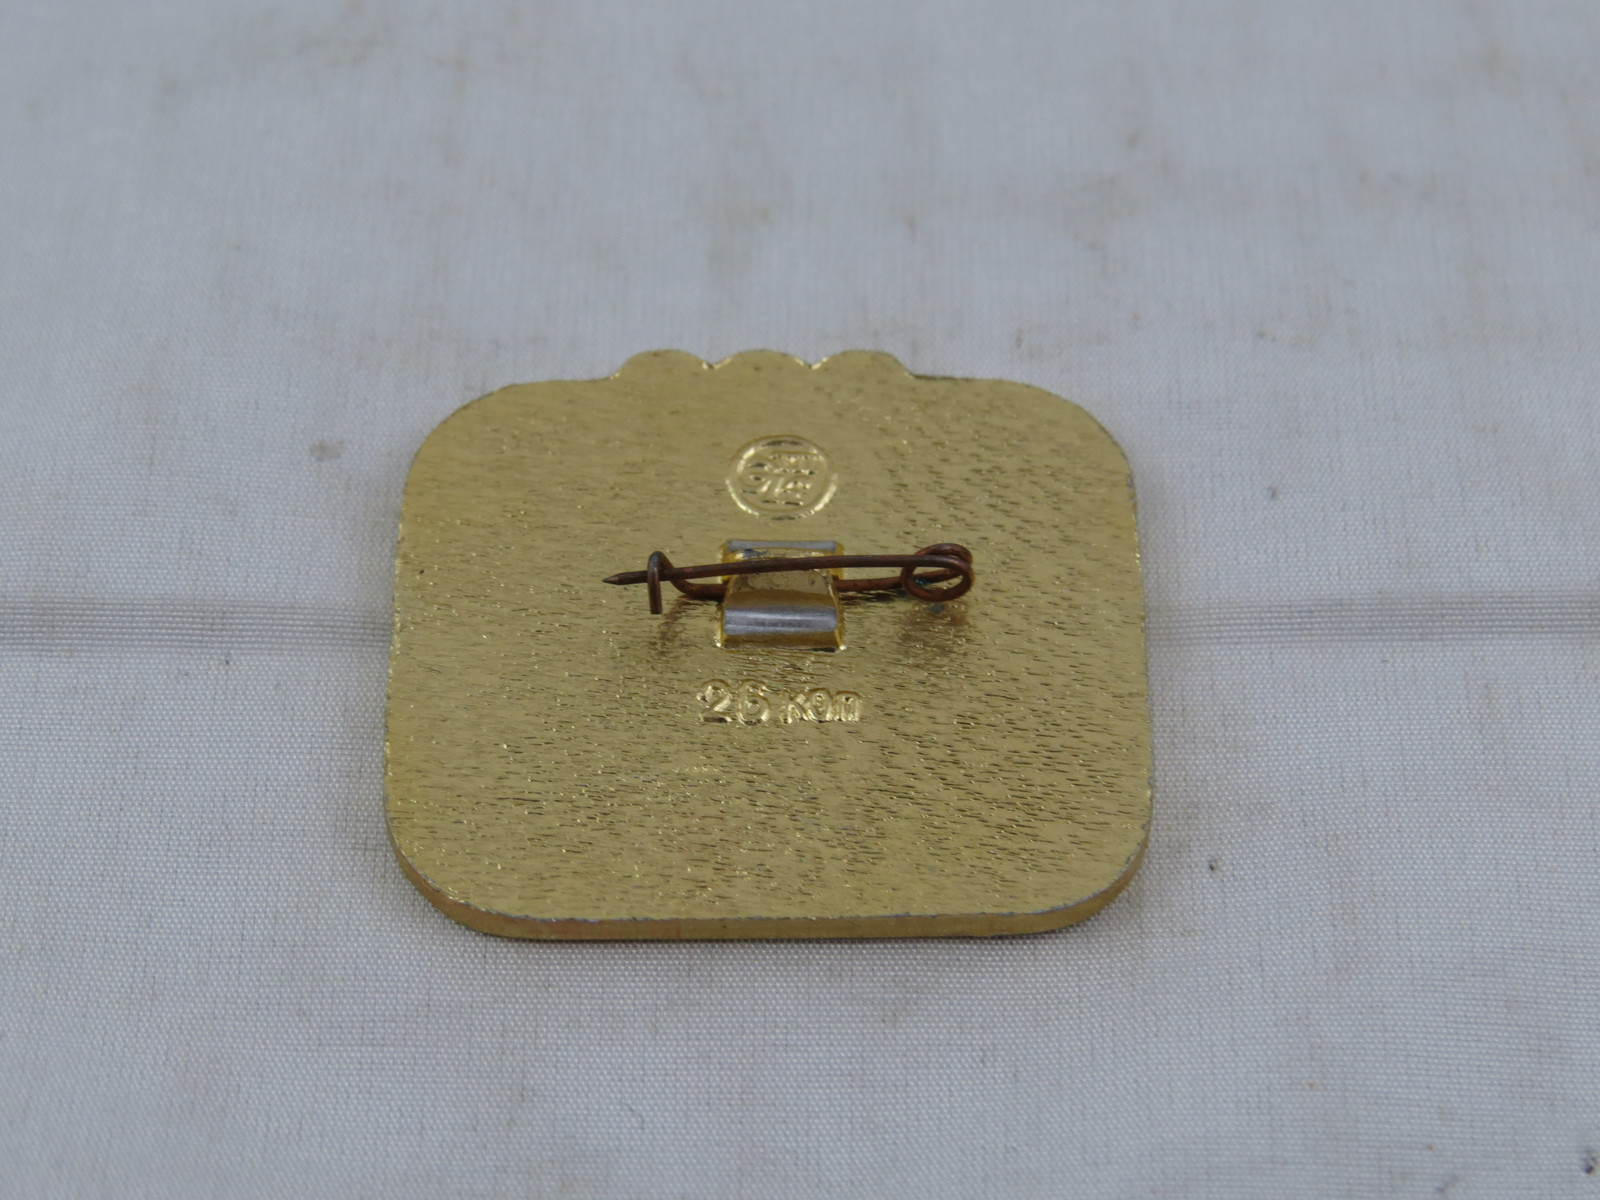 1980 Summer Olympic Games Pin - Track and Field  Event - Stamped Pin image 3